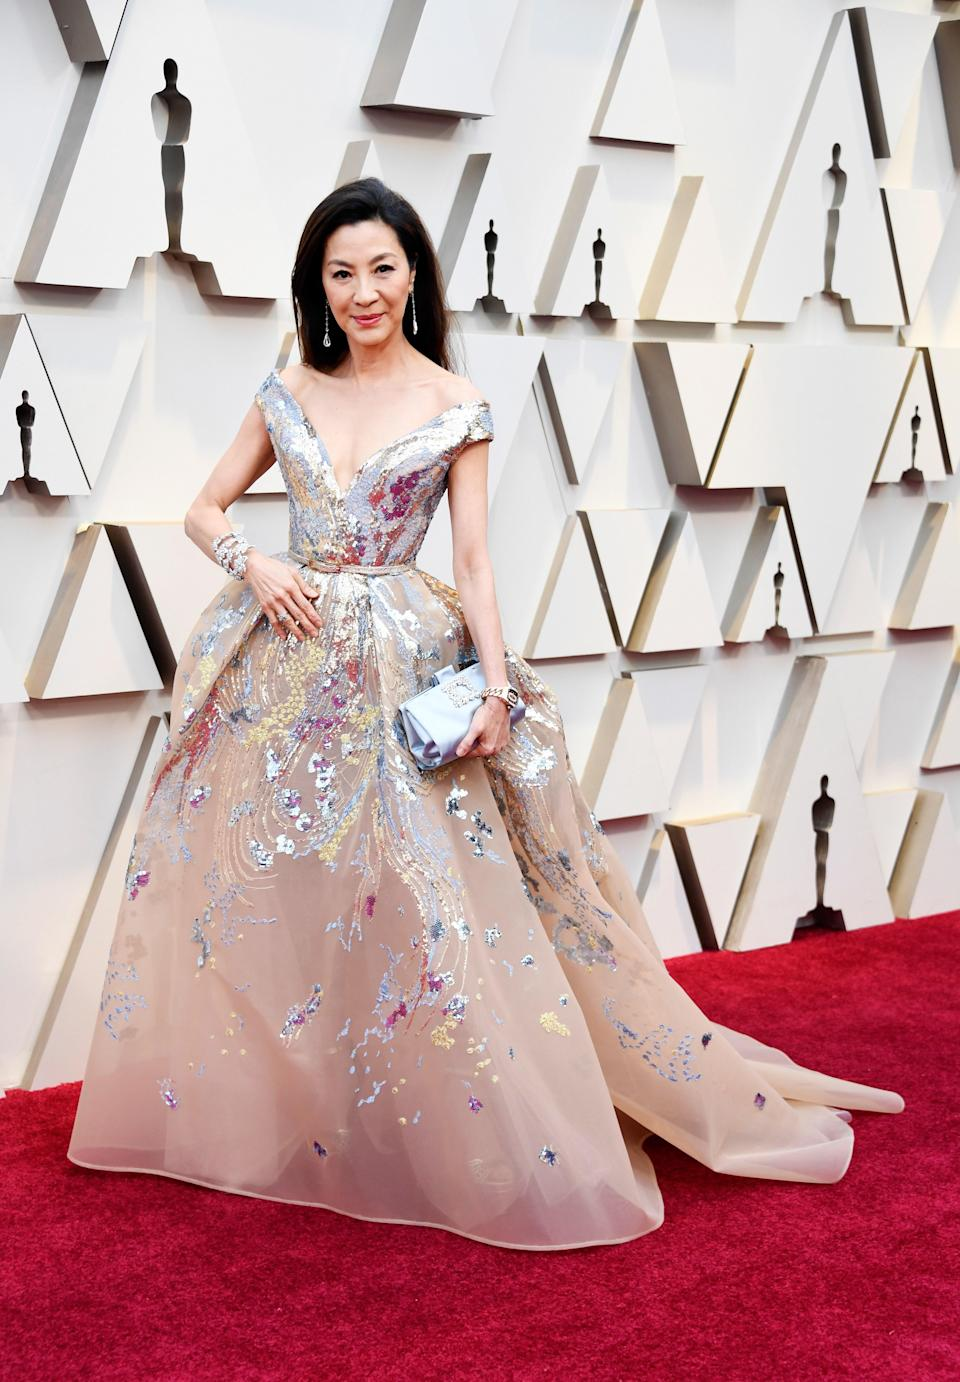 Michelle Yeoh in Elie Saab and Chopard jewelry with a Roger Vivier bag